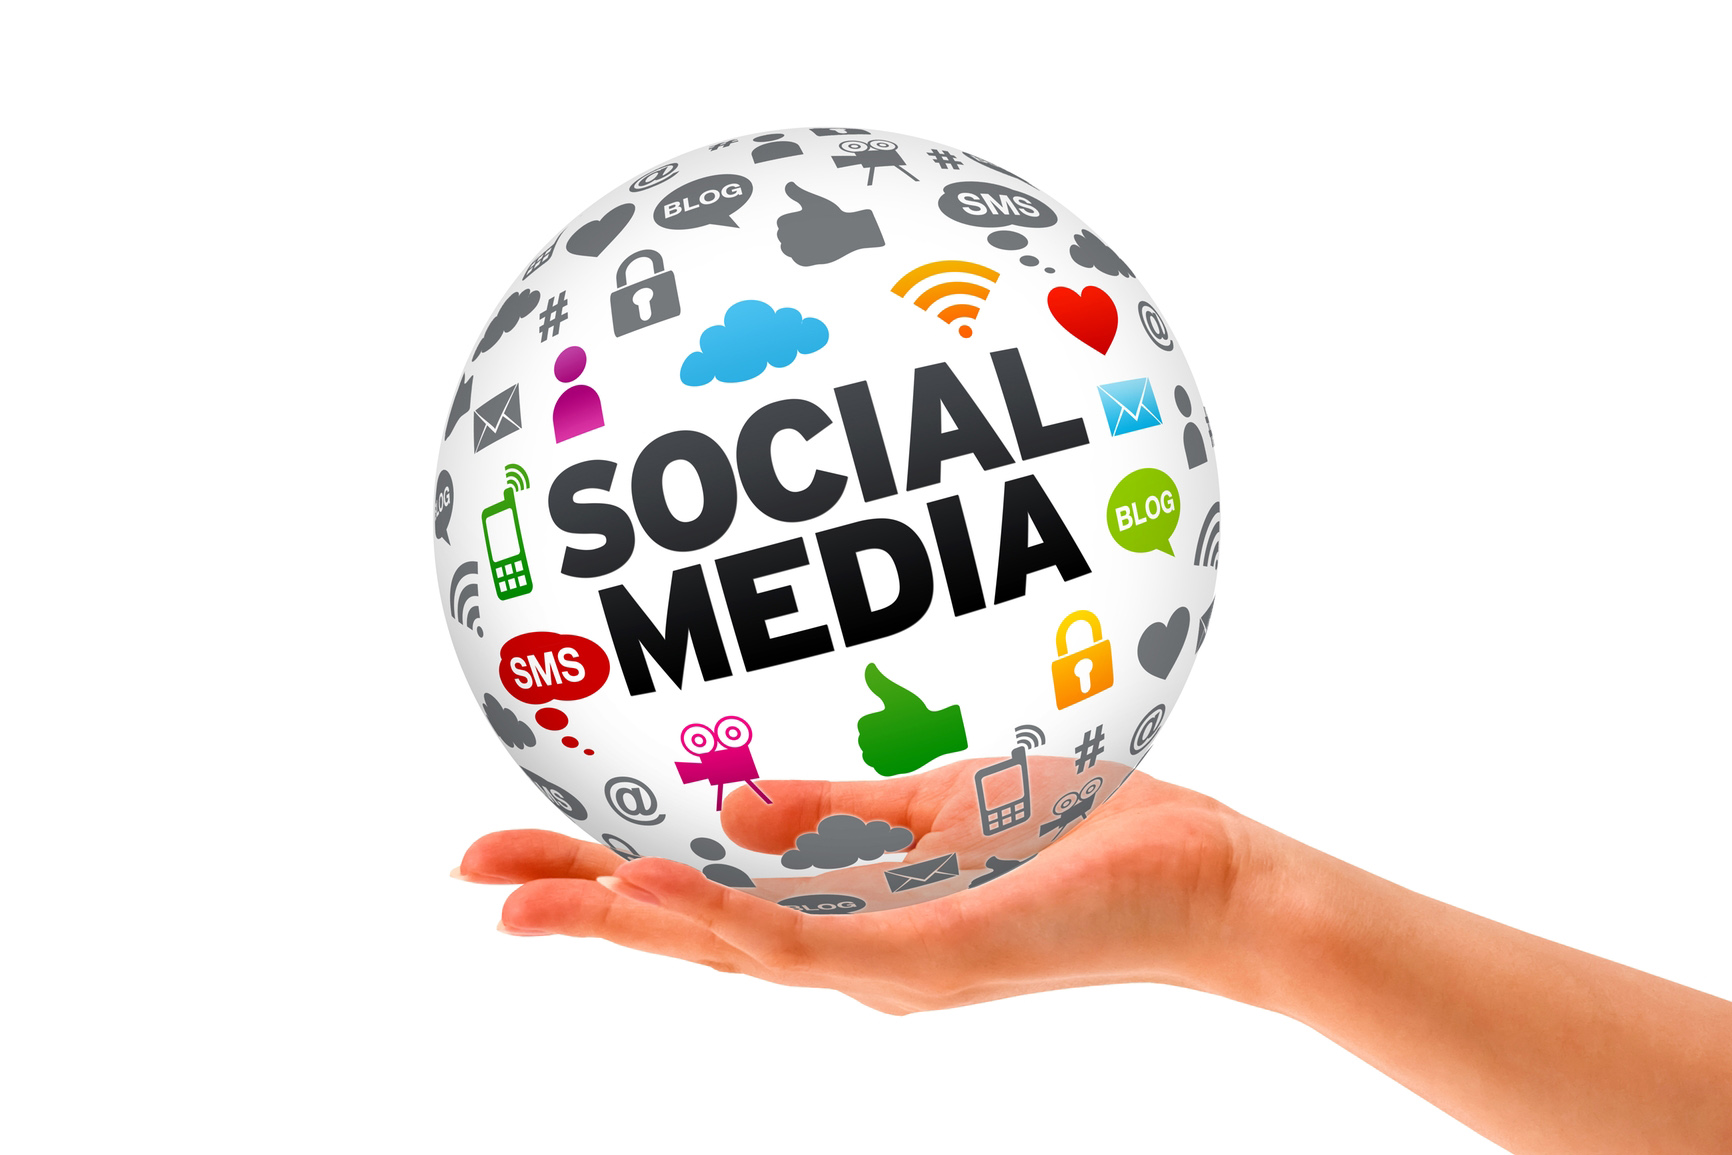 Tools To Track And Monitor The Social Media Marketing Campaign